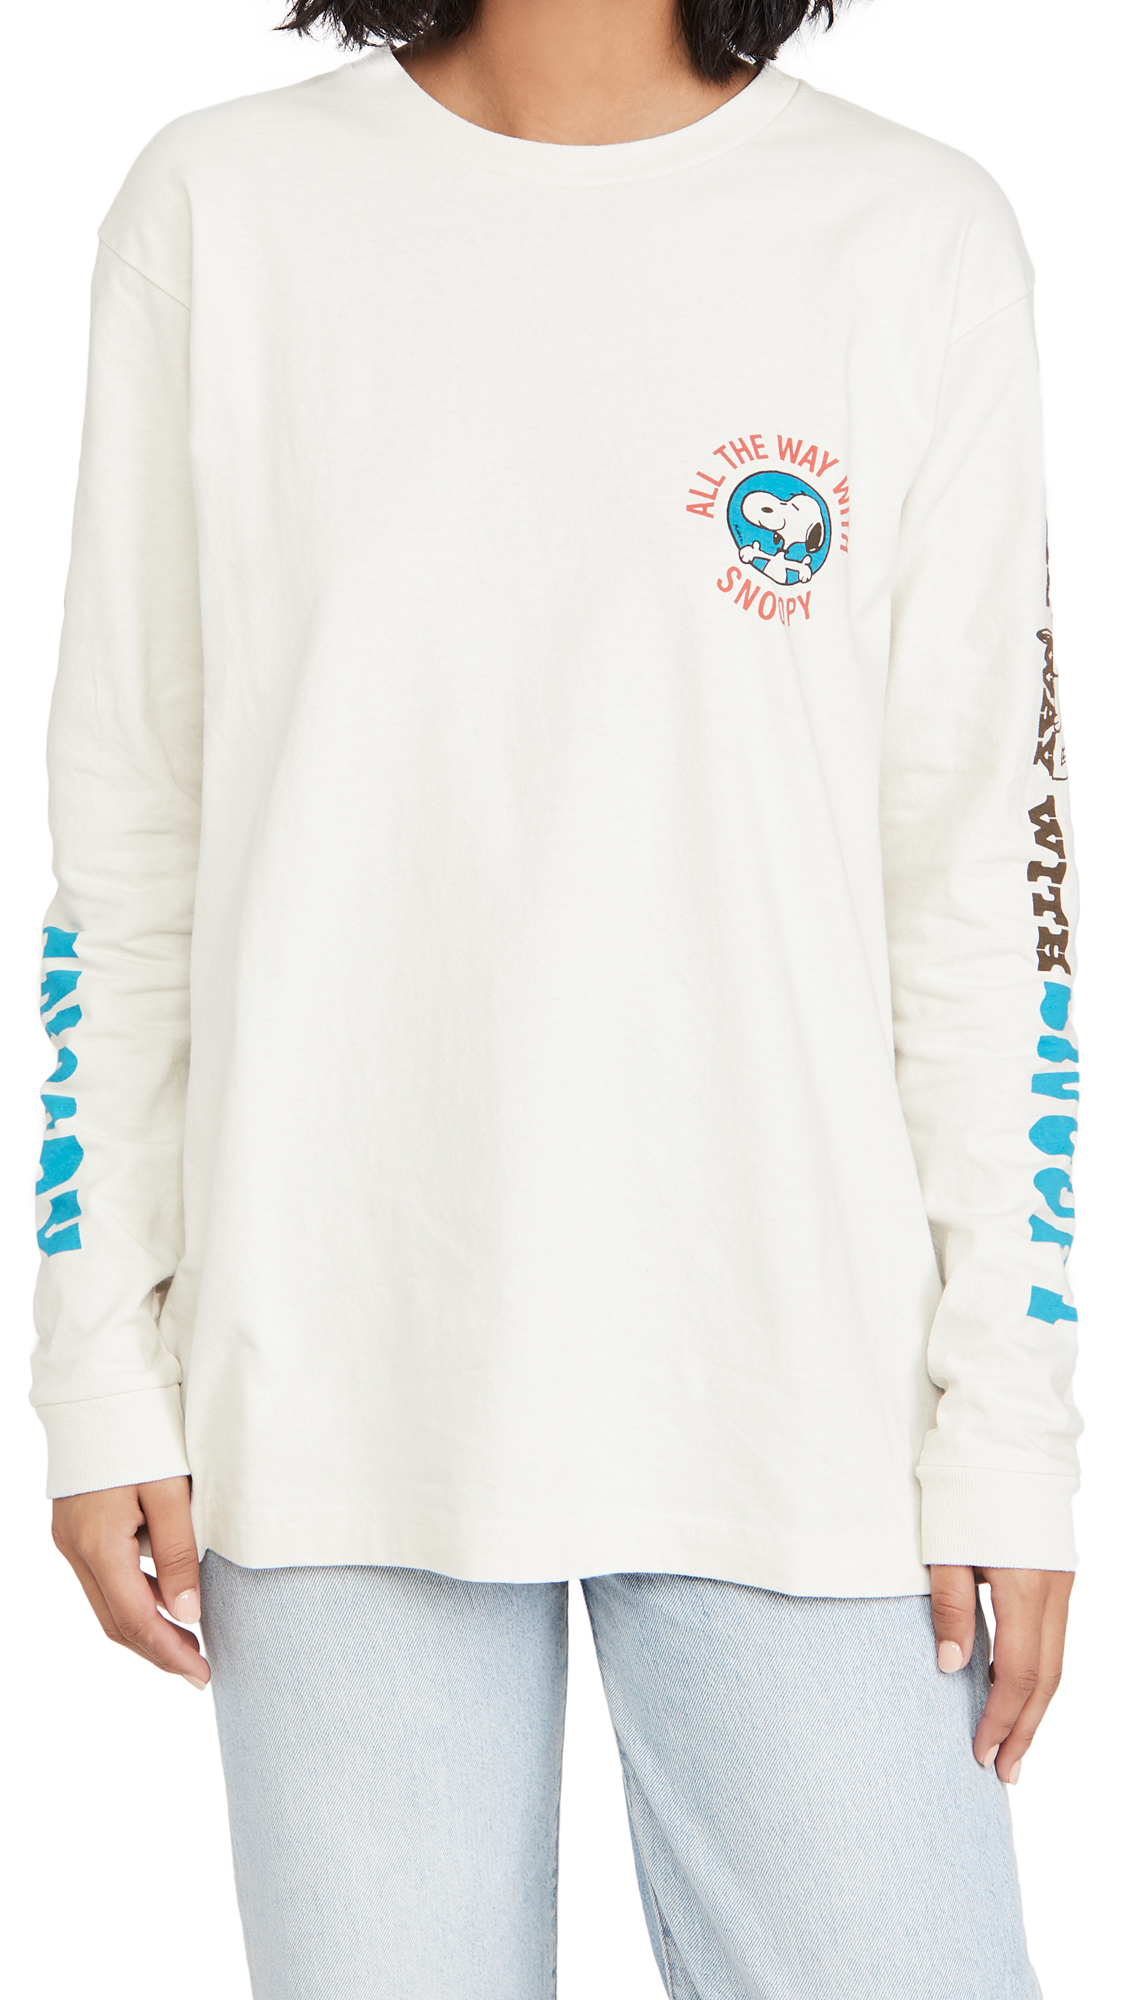 The Marc Jacobs x Peanuts The Long Sleeve Tee